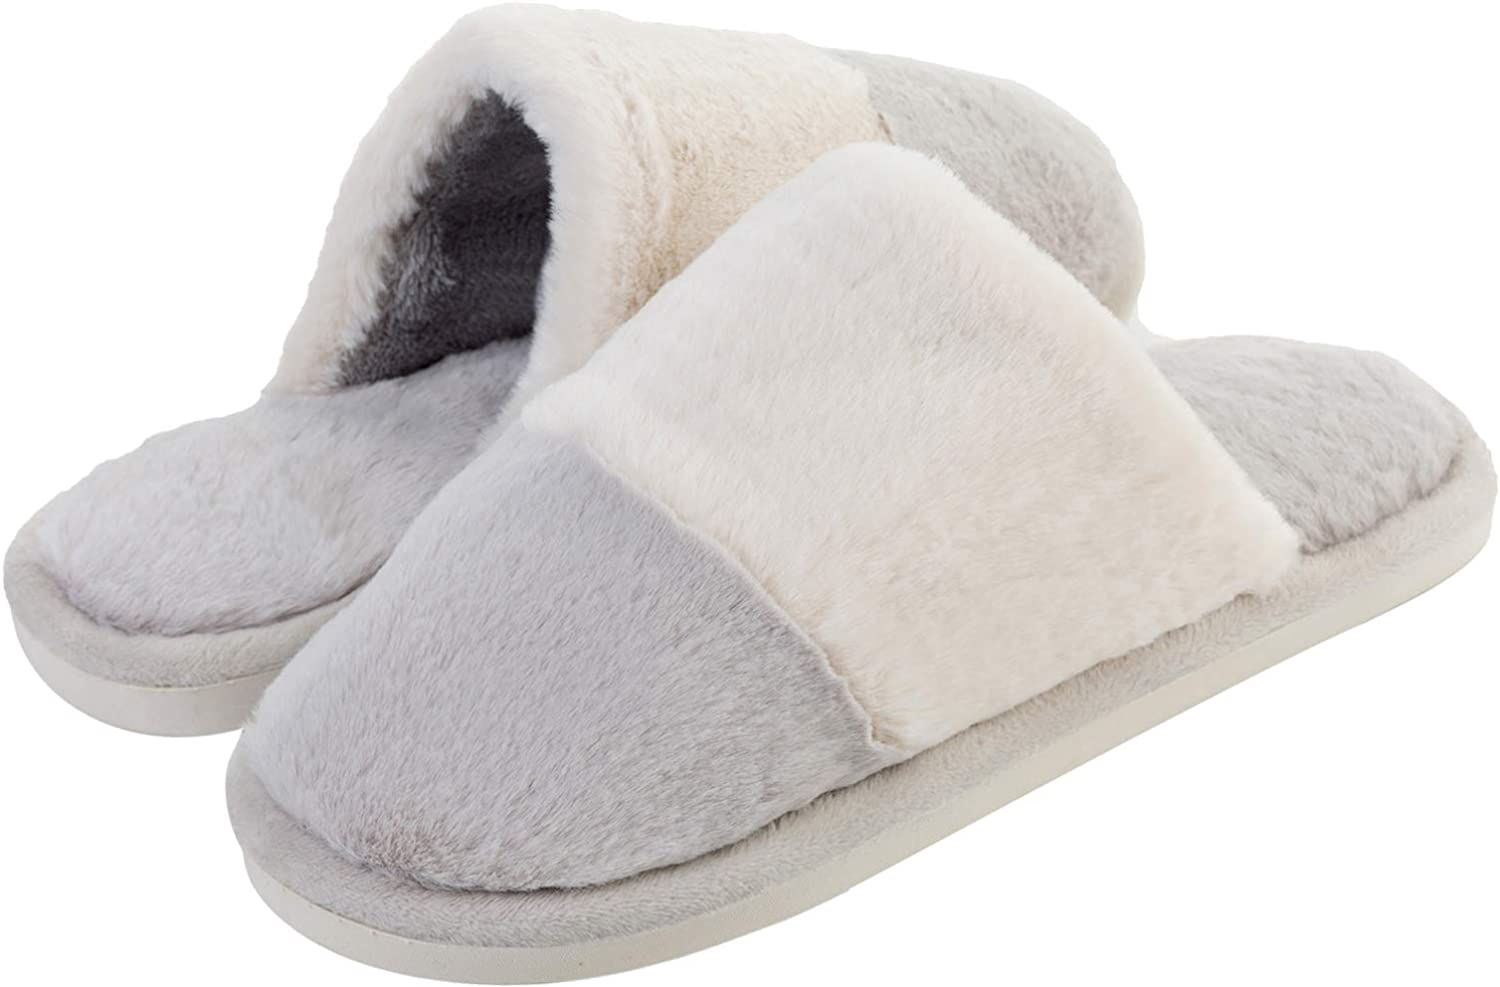 JINKUNL Womens Mens Comfort Furry House shoes Winter Warm Memory Foam Clog Slippers Indoor & Outdoor Light Grey